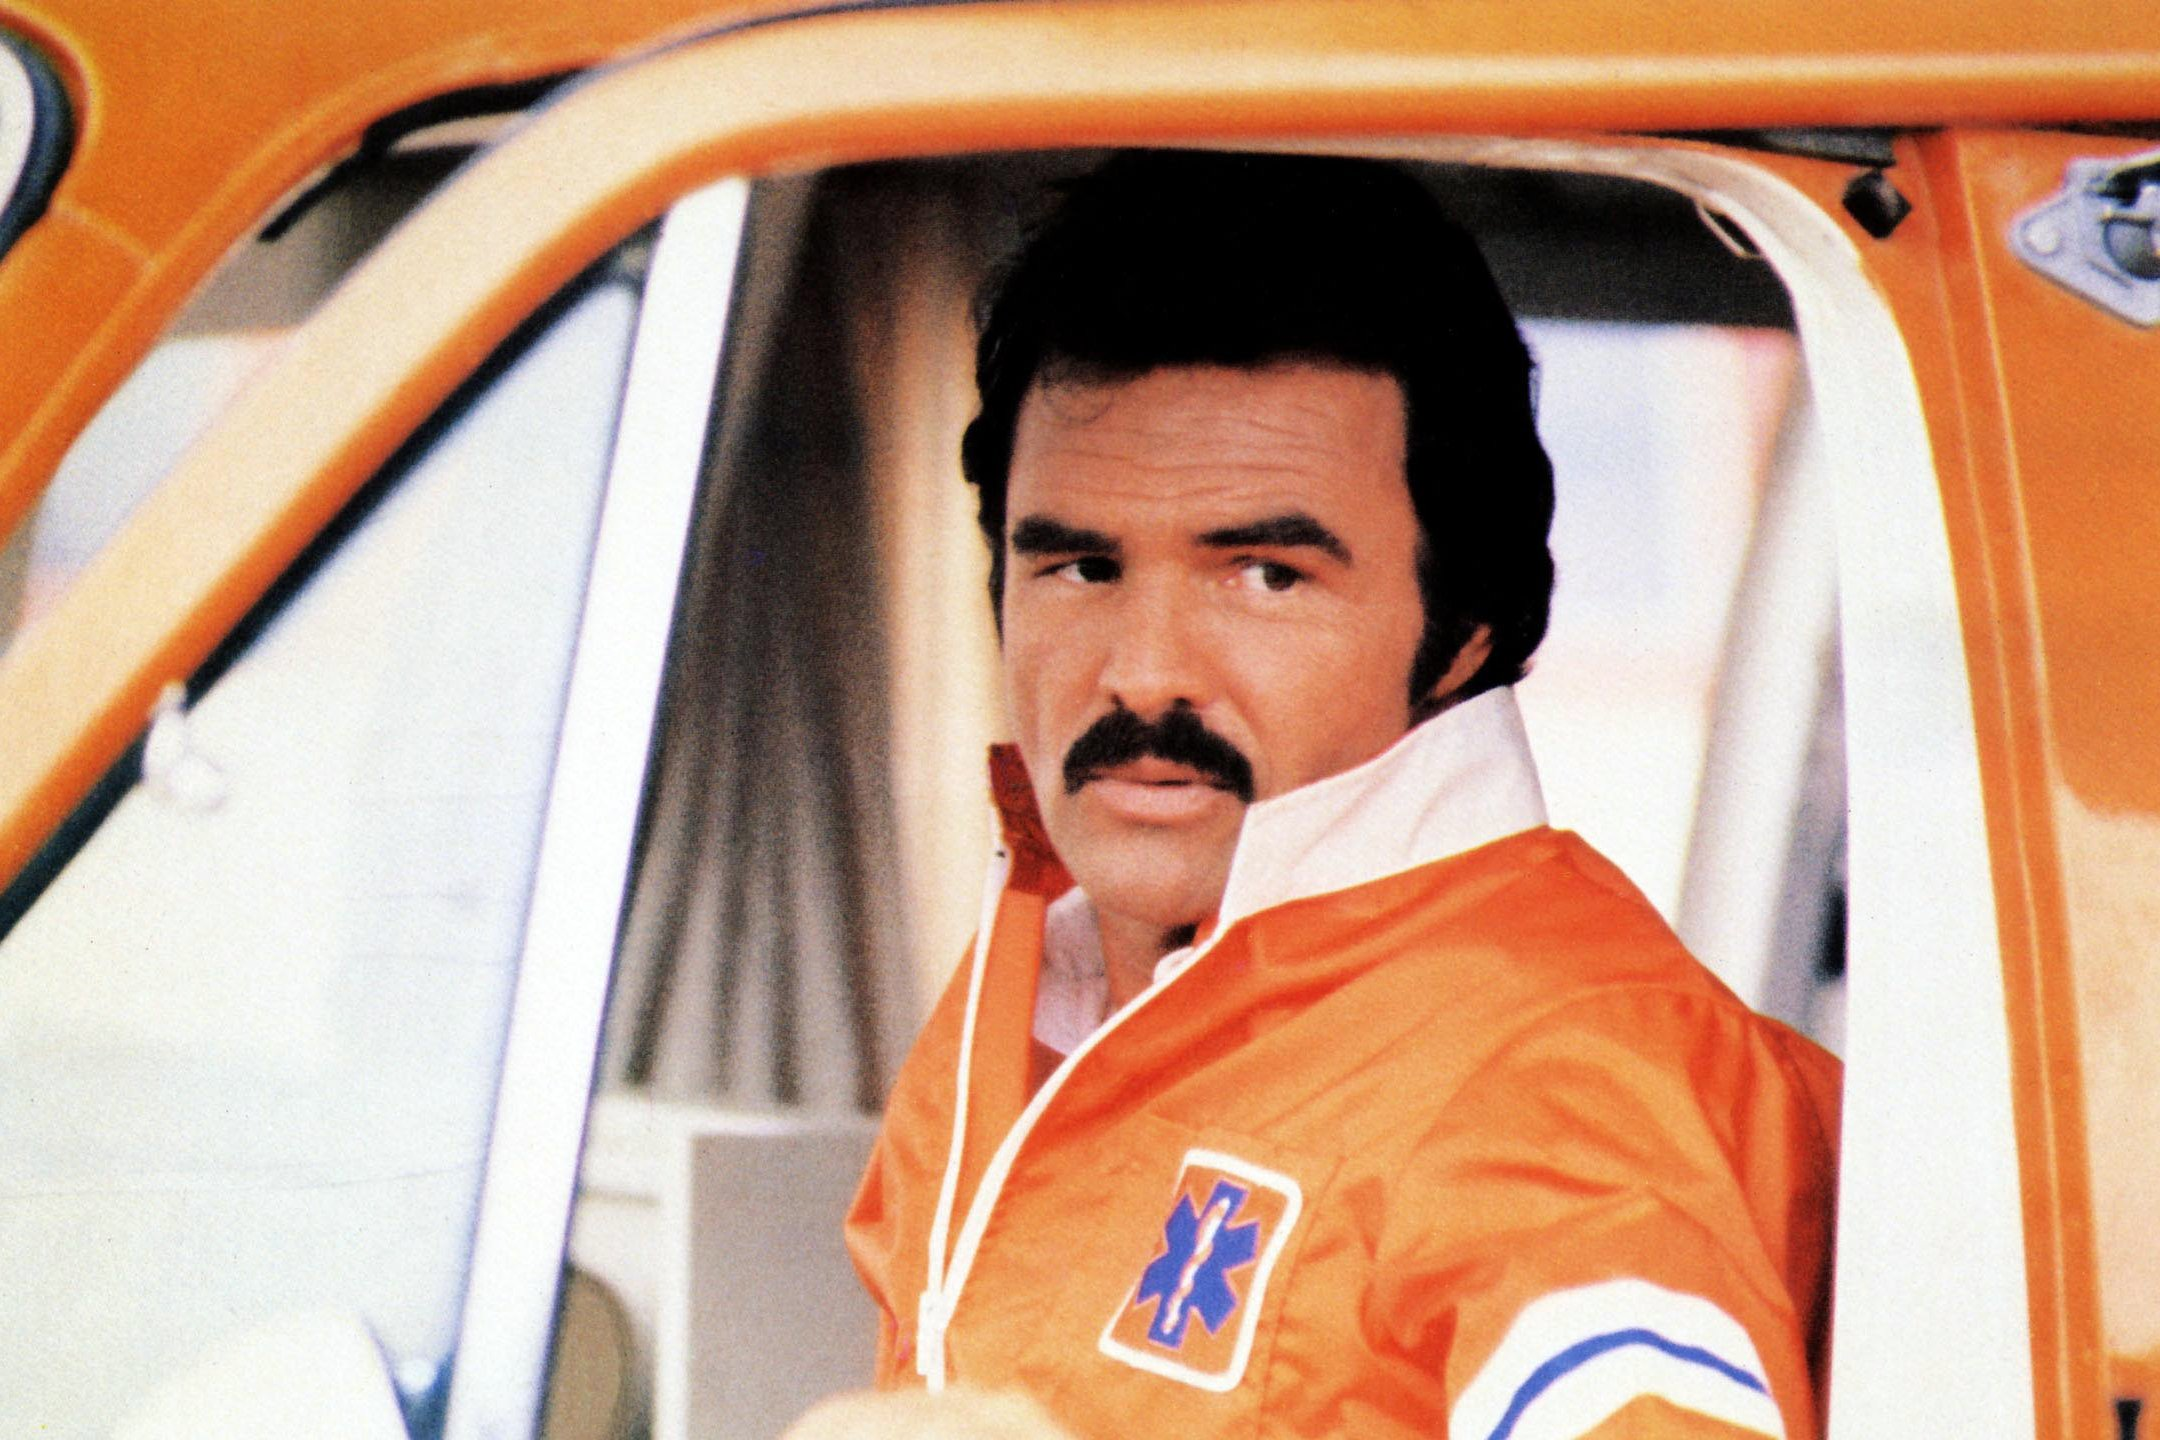 burt reynolds cannonball run 20 Fun Facts You Didn't Know About The Cannonball Run Films